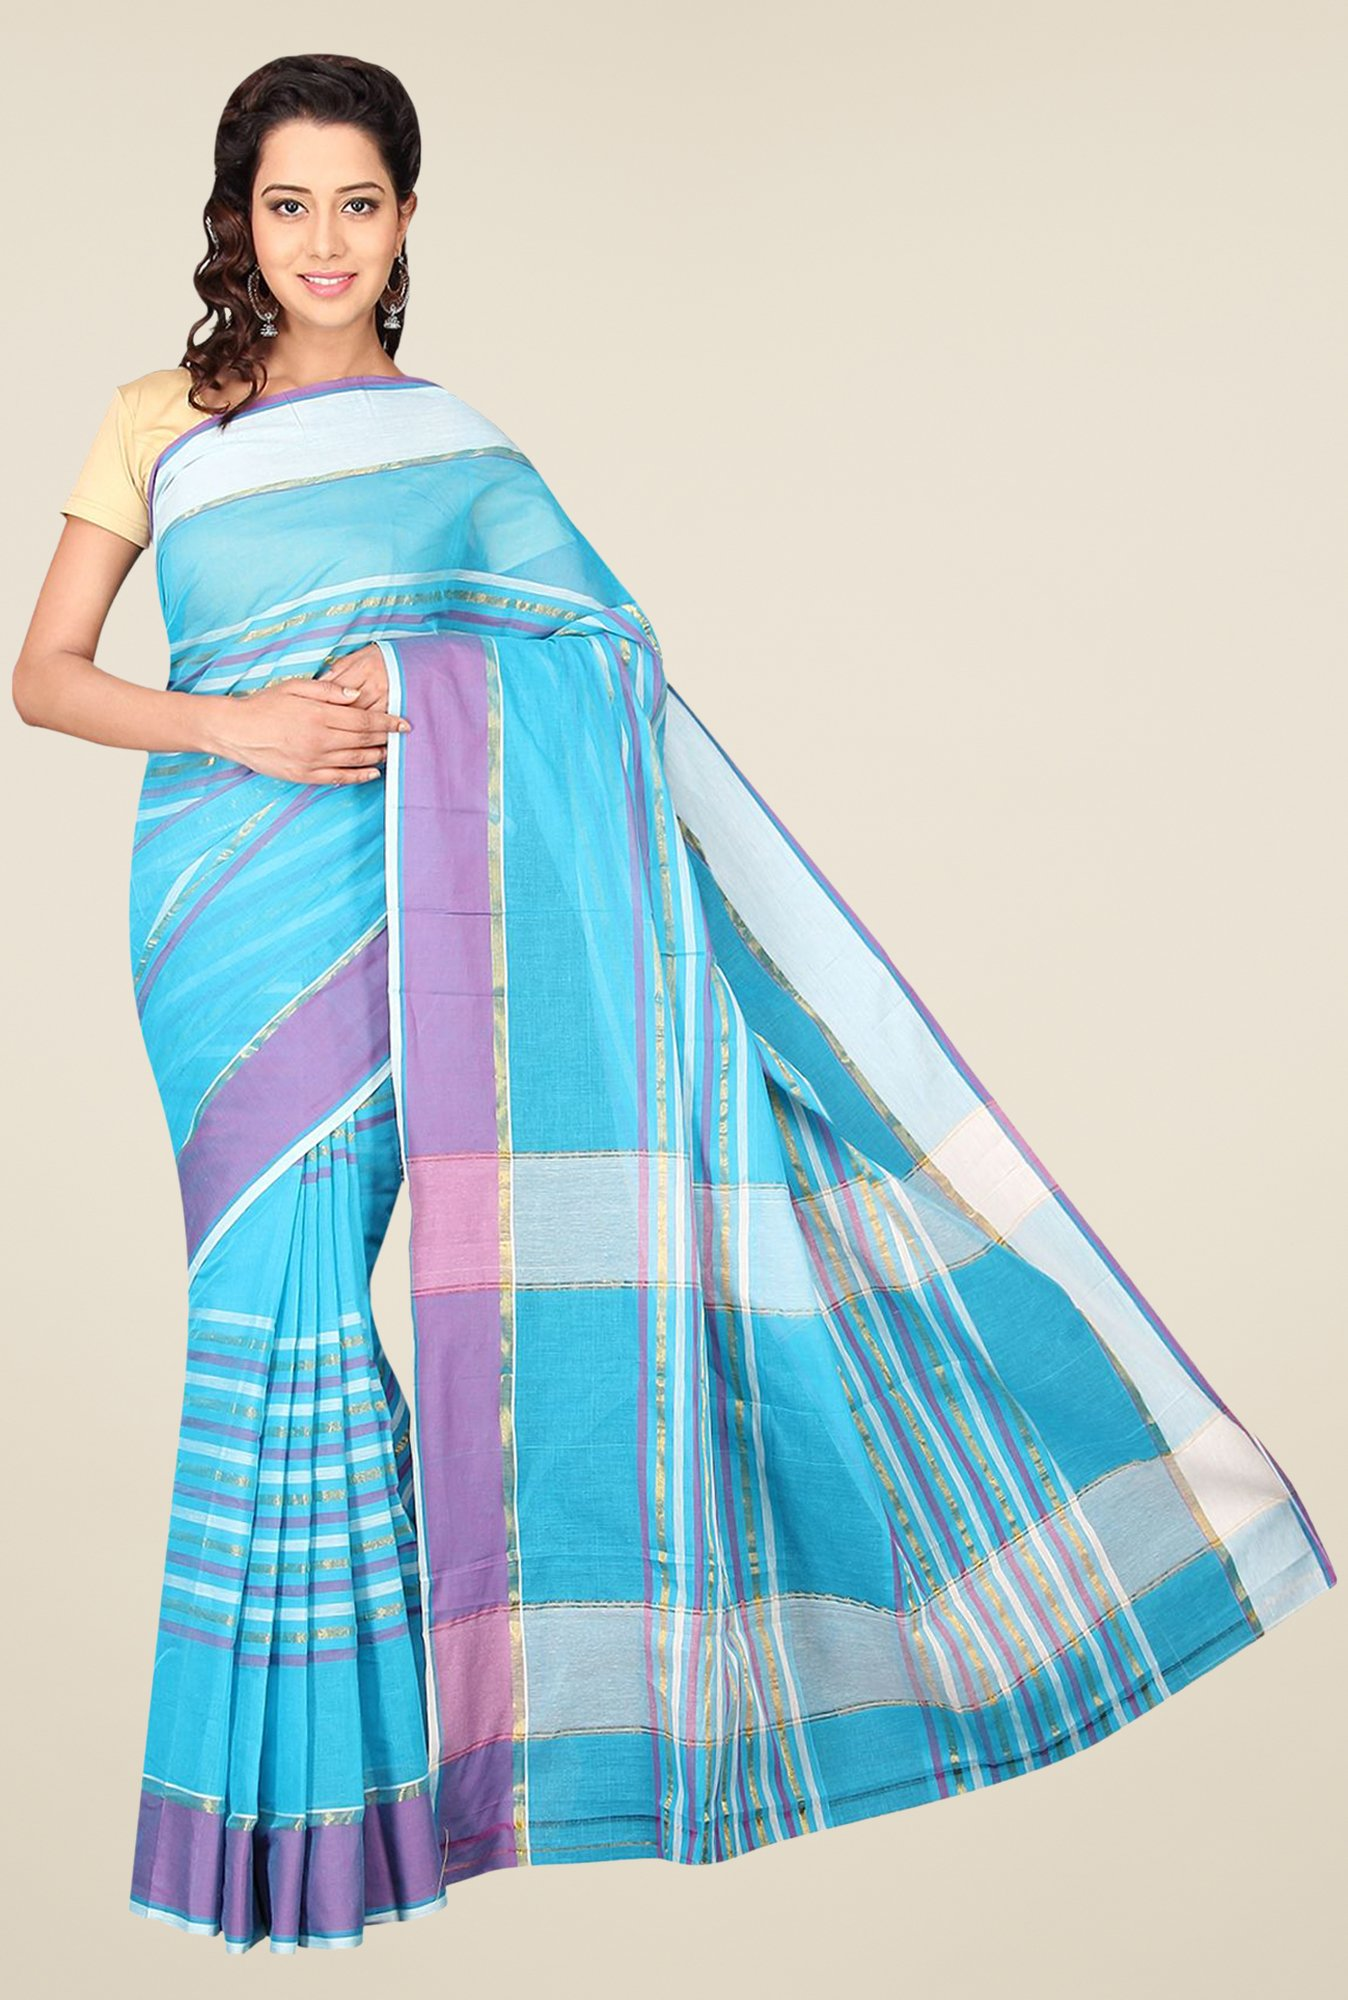 Pavecha's Blue Mangalagiri Cotton Striped Saree